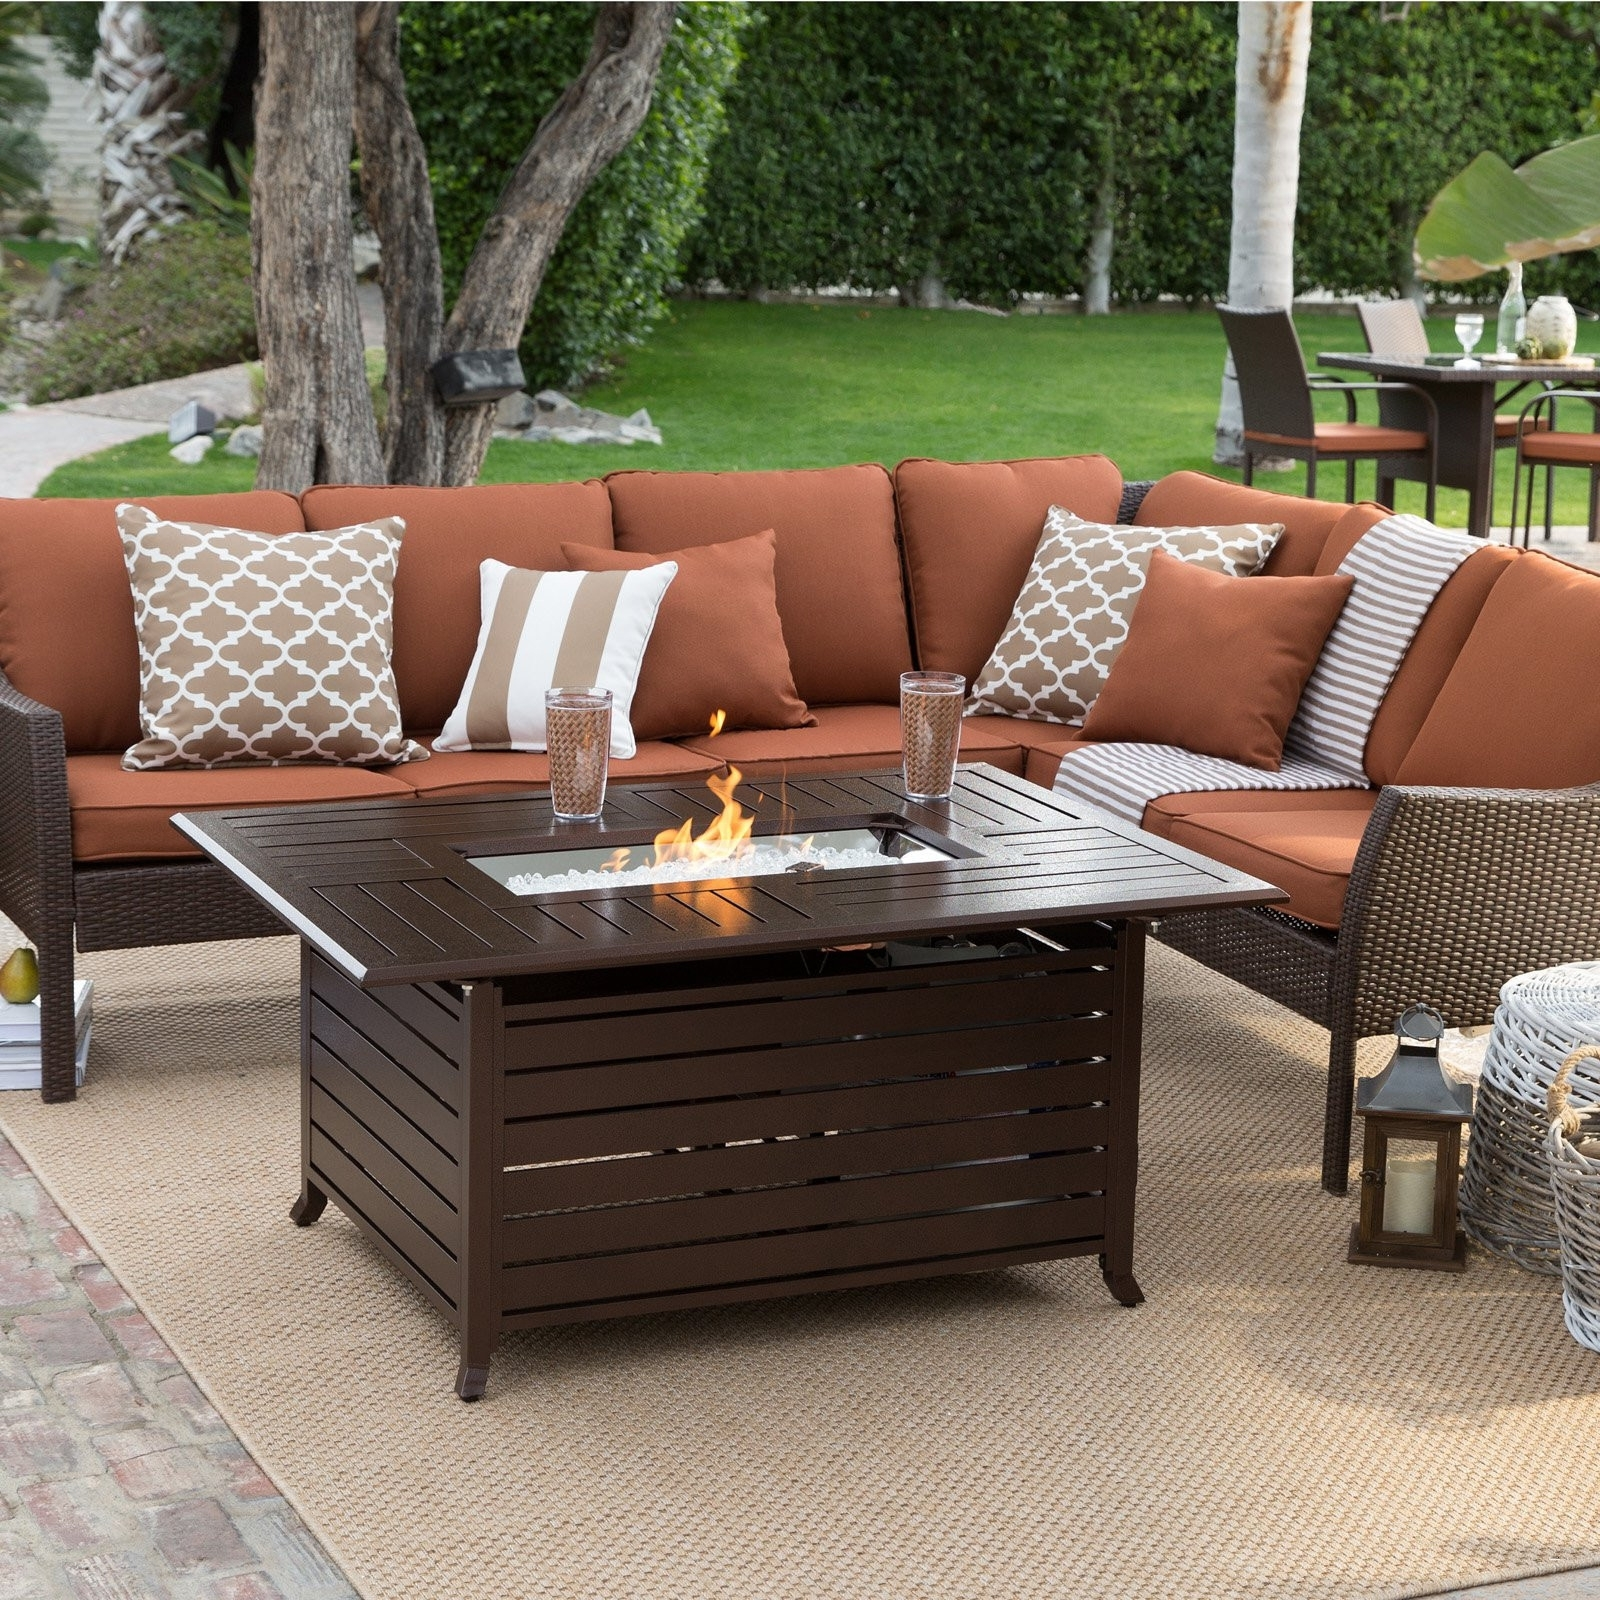 Fireplace Tables Outdoor Unique Patio Conversation Sets With Fire With Regard To Most Up To Date Patio Conversation Sets With Fire Pit (View 5 of 15)